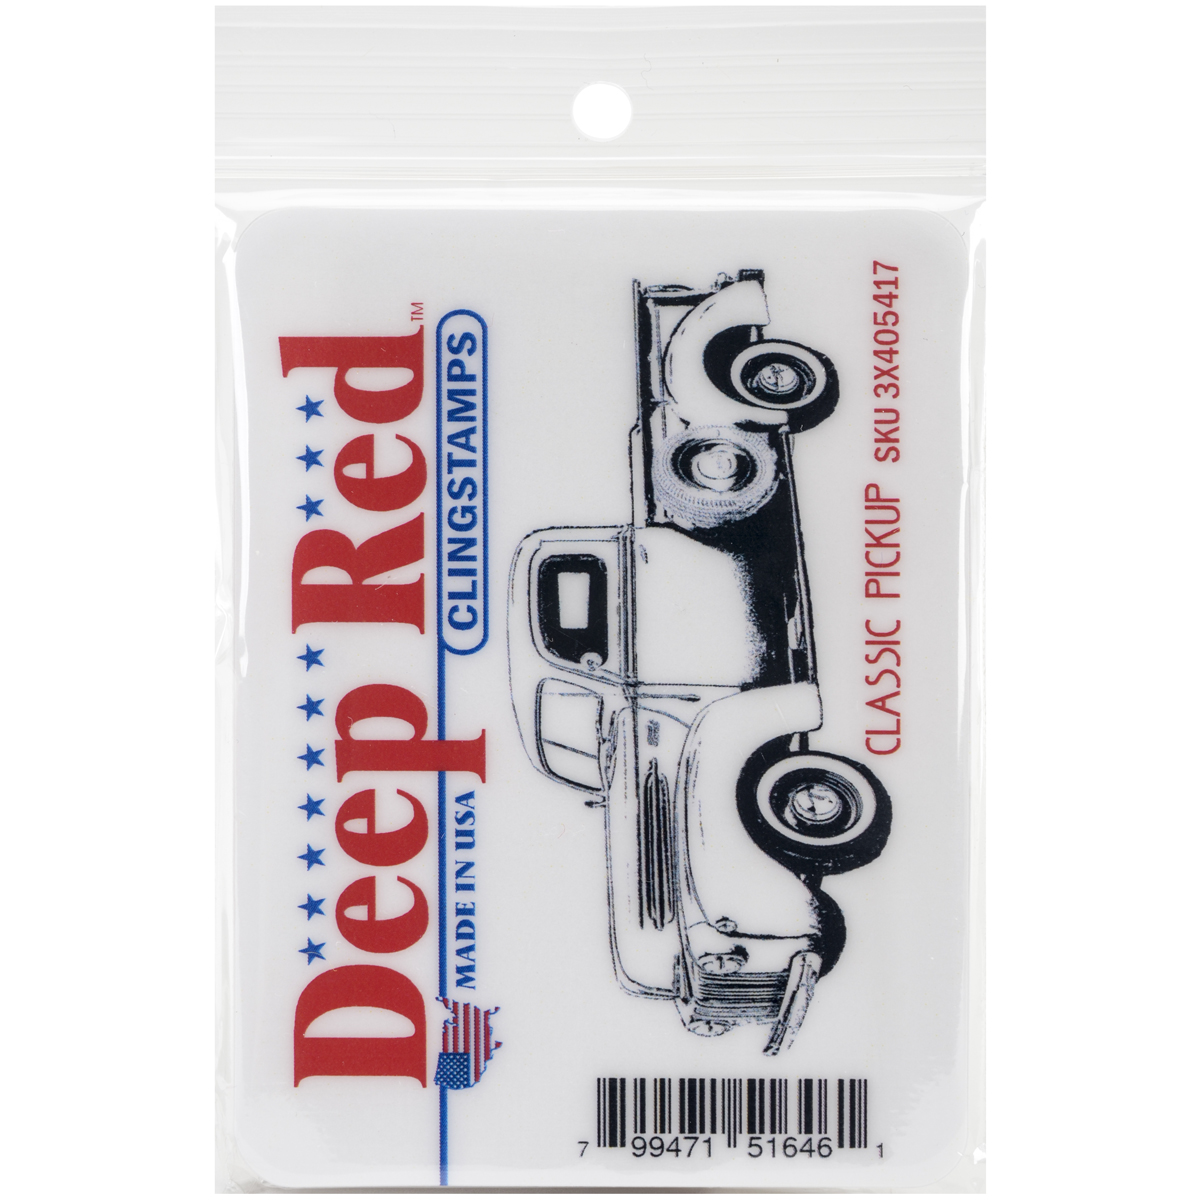 Deep Red Cling Stamp 3.1X1.2-Classic Pickup Truck